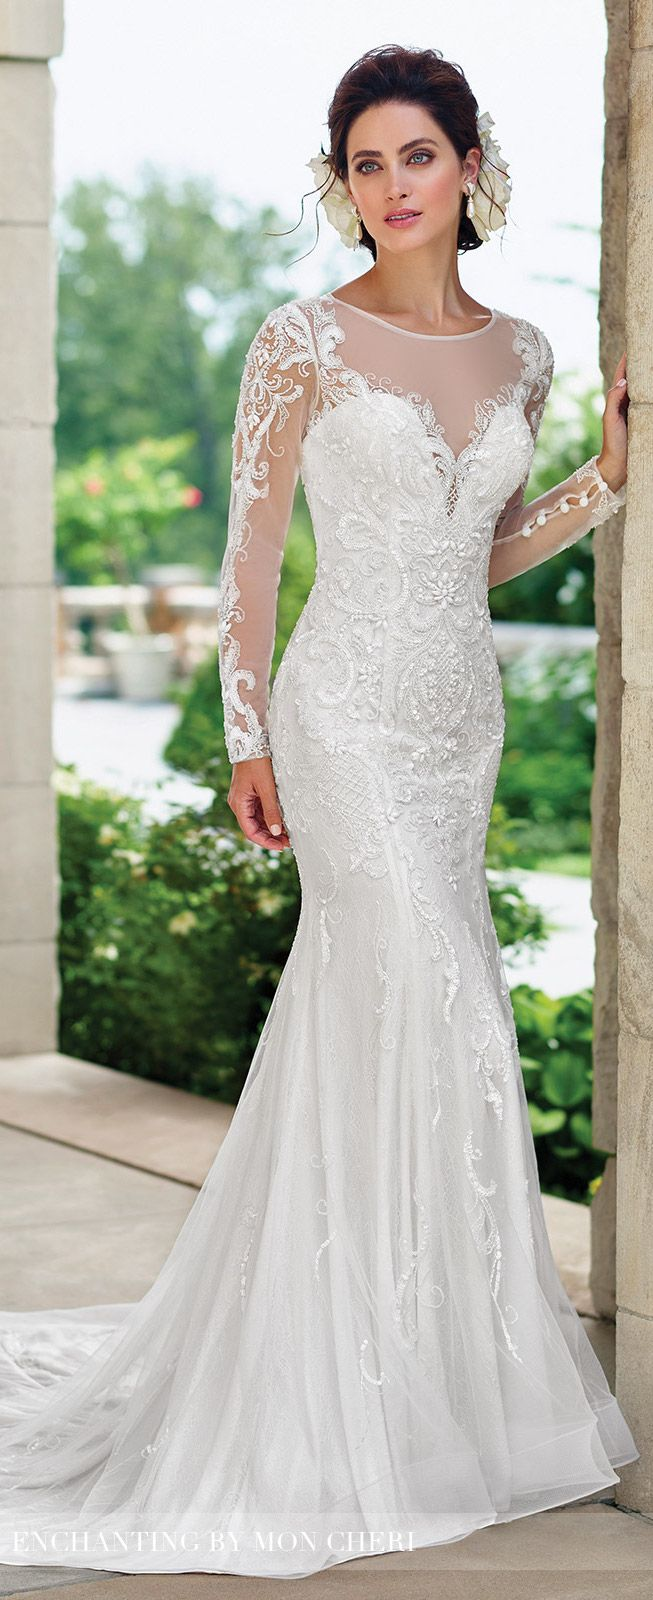 Long Sleeve Fit u Flare Wedding Dress  Enchanting by Mon